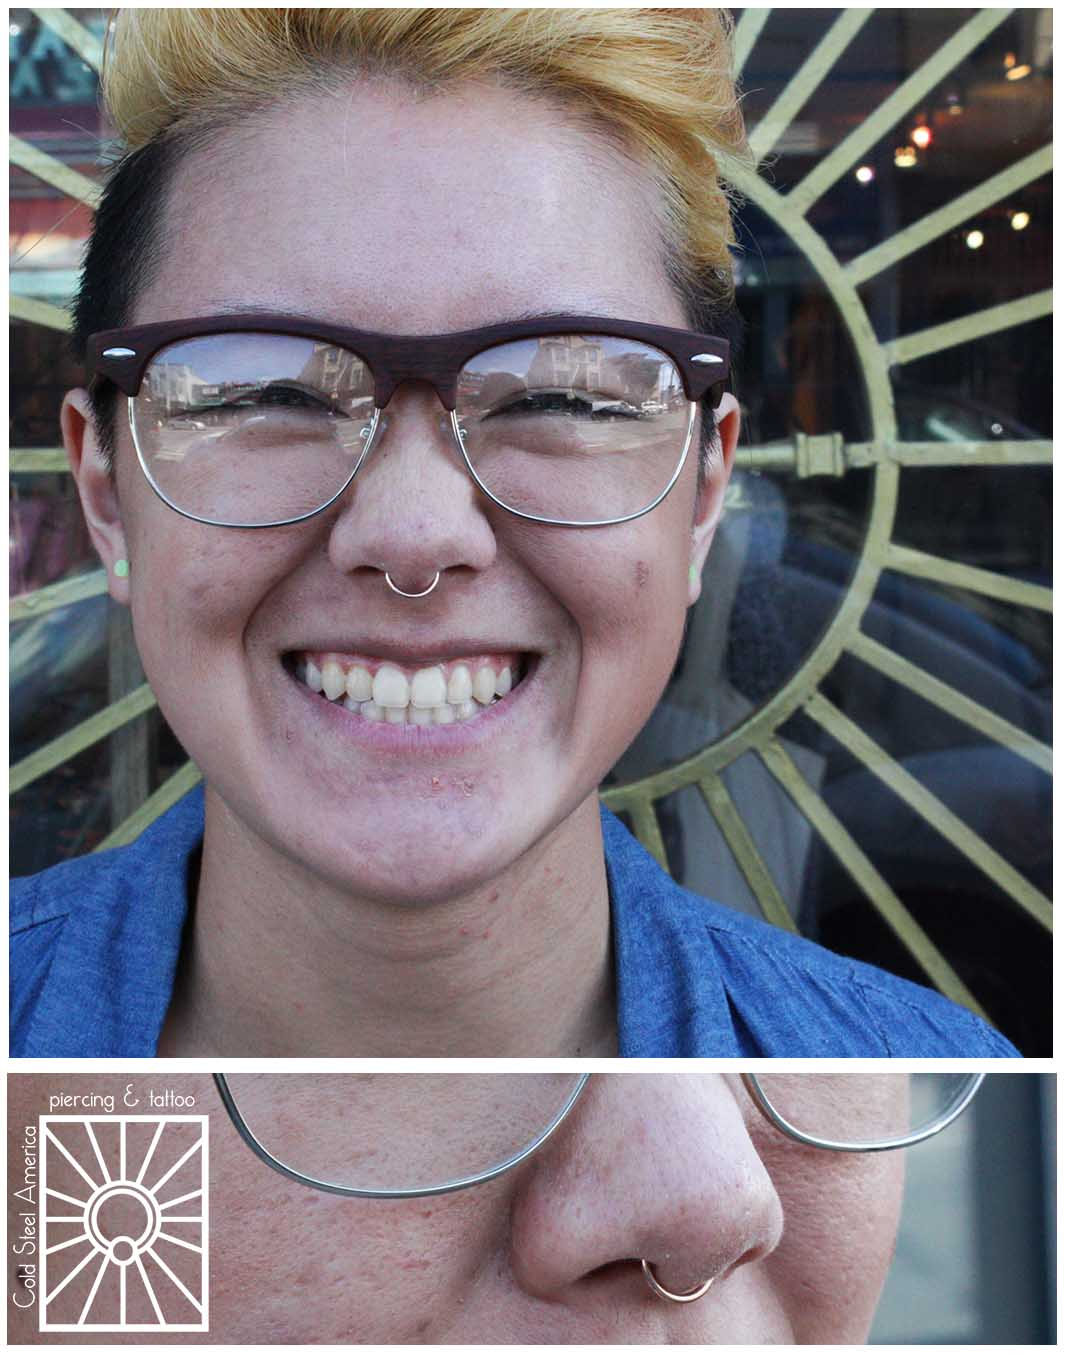 So this sassy young lady got her septum pierced a few months ago by our wonderful friend Perry Doig at Rose Gold's, and today we got to snazz it up with this cute little Rose Gold continuous ring from Body Vision Los Angeles! Cute cute cute!